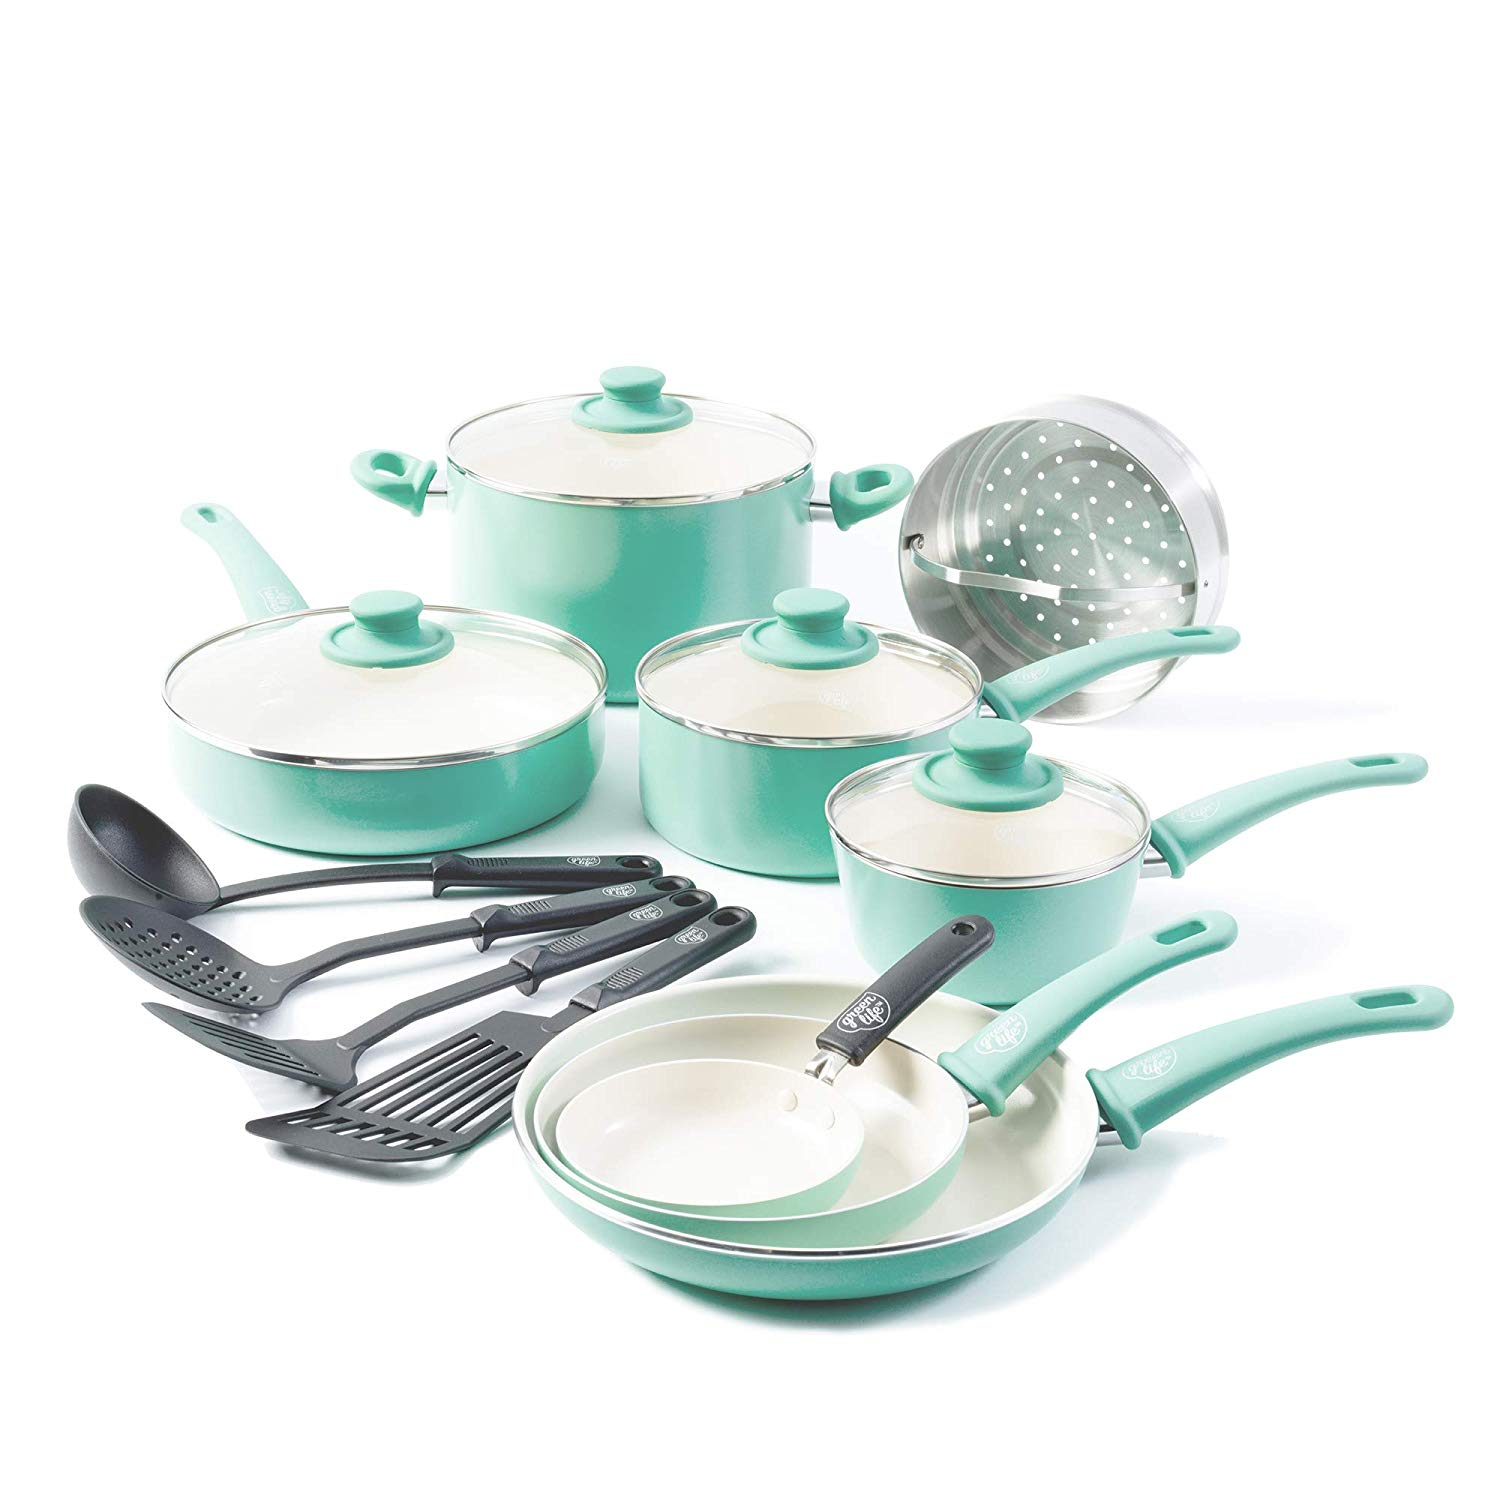 GreenLife Soft Grip 16-piece Ceramic Non-Stick Cookware Set